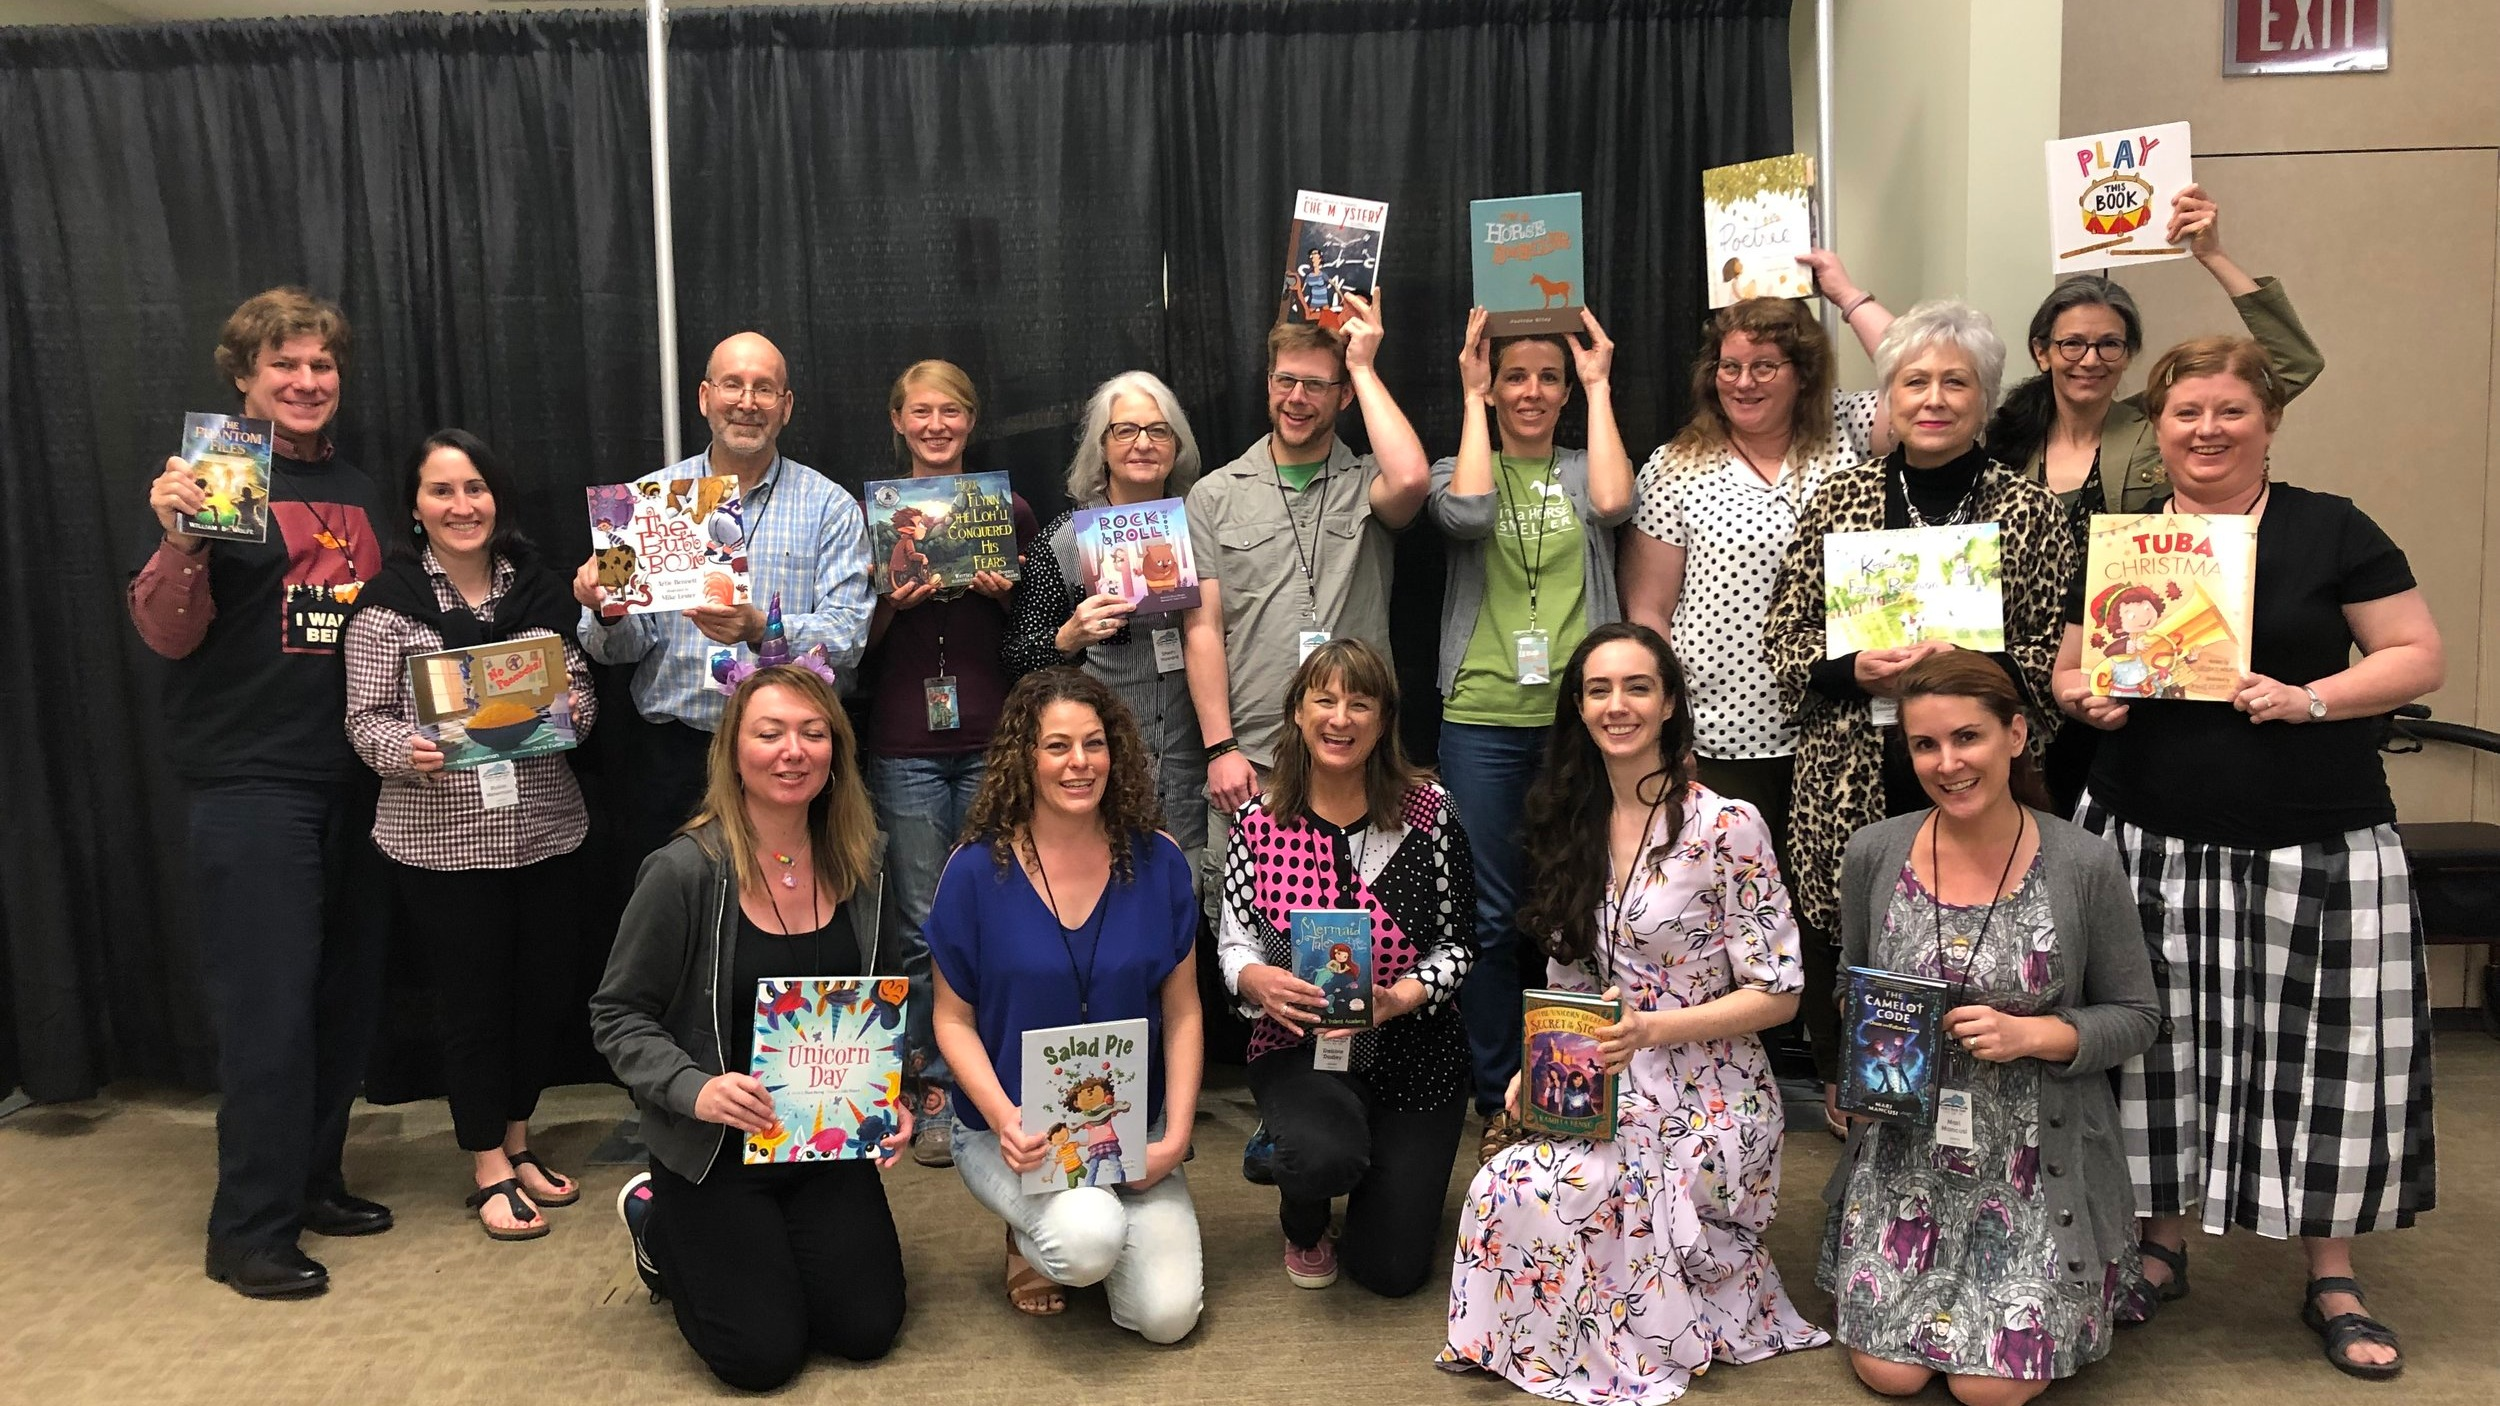 These are only a few of the children's book authors and illustrators at the festival. There were over 150 authors there.